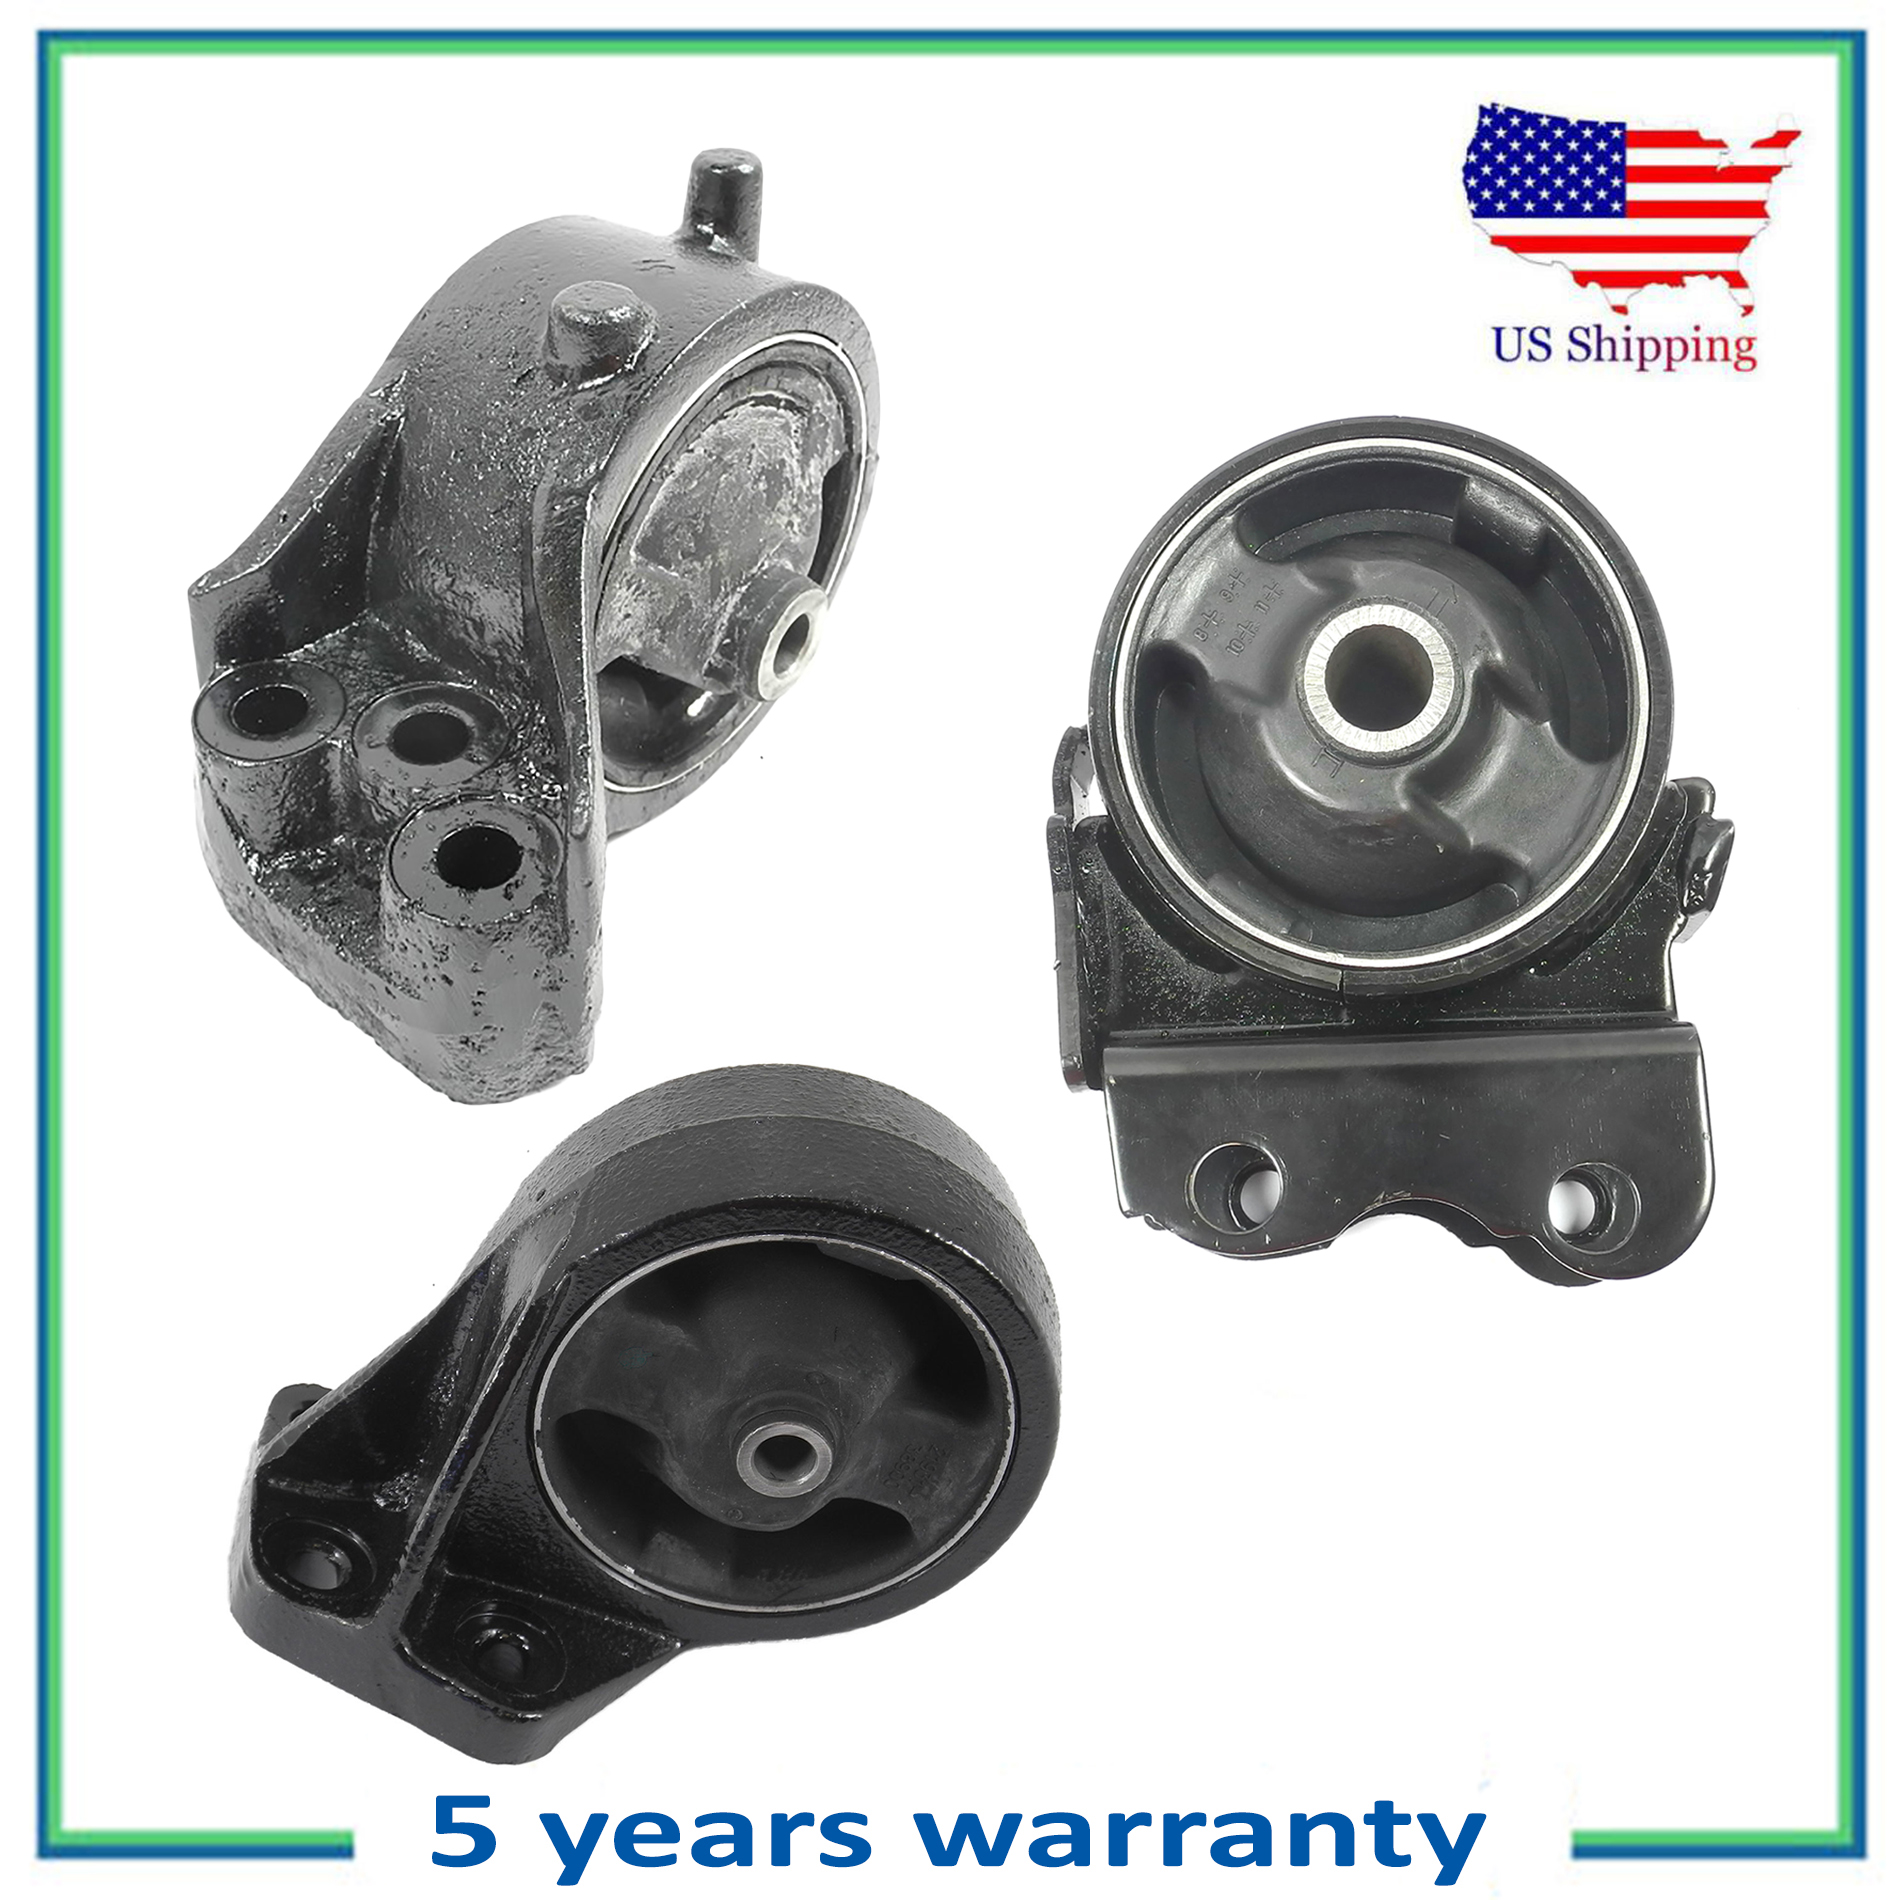 For 2001-2006 Kia Optima 2.4L Engine Motor Mount Mounts AT M363 6108 7106 7129